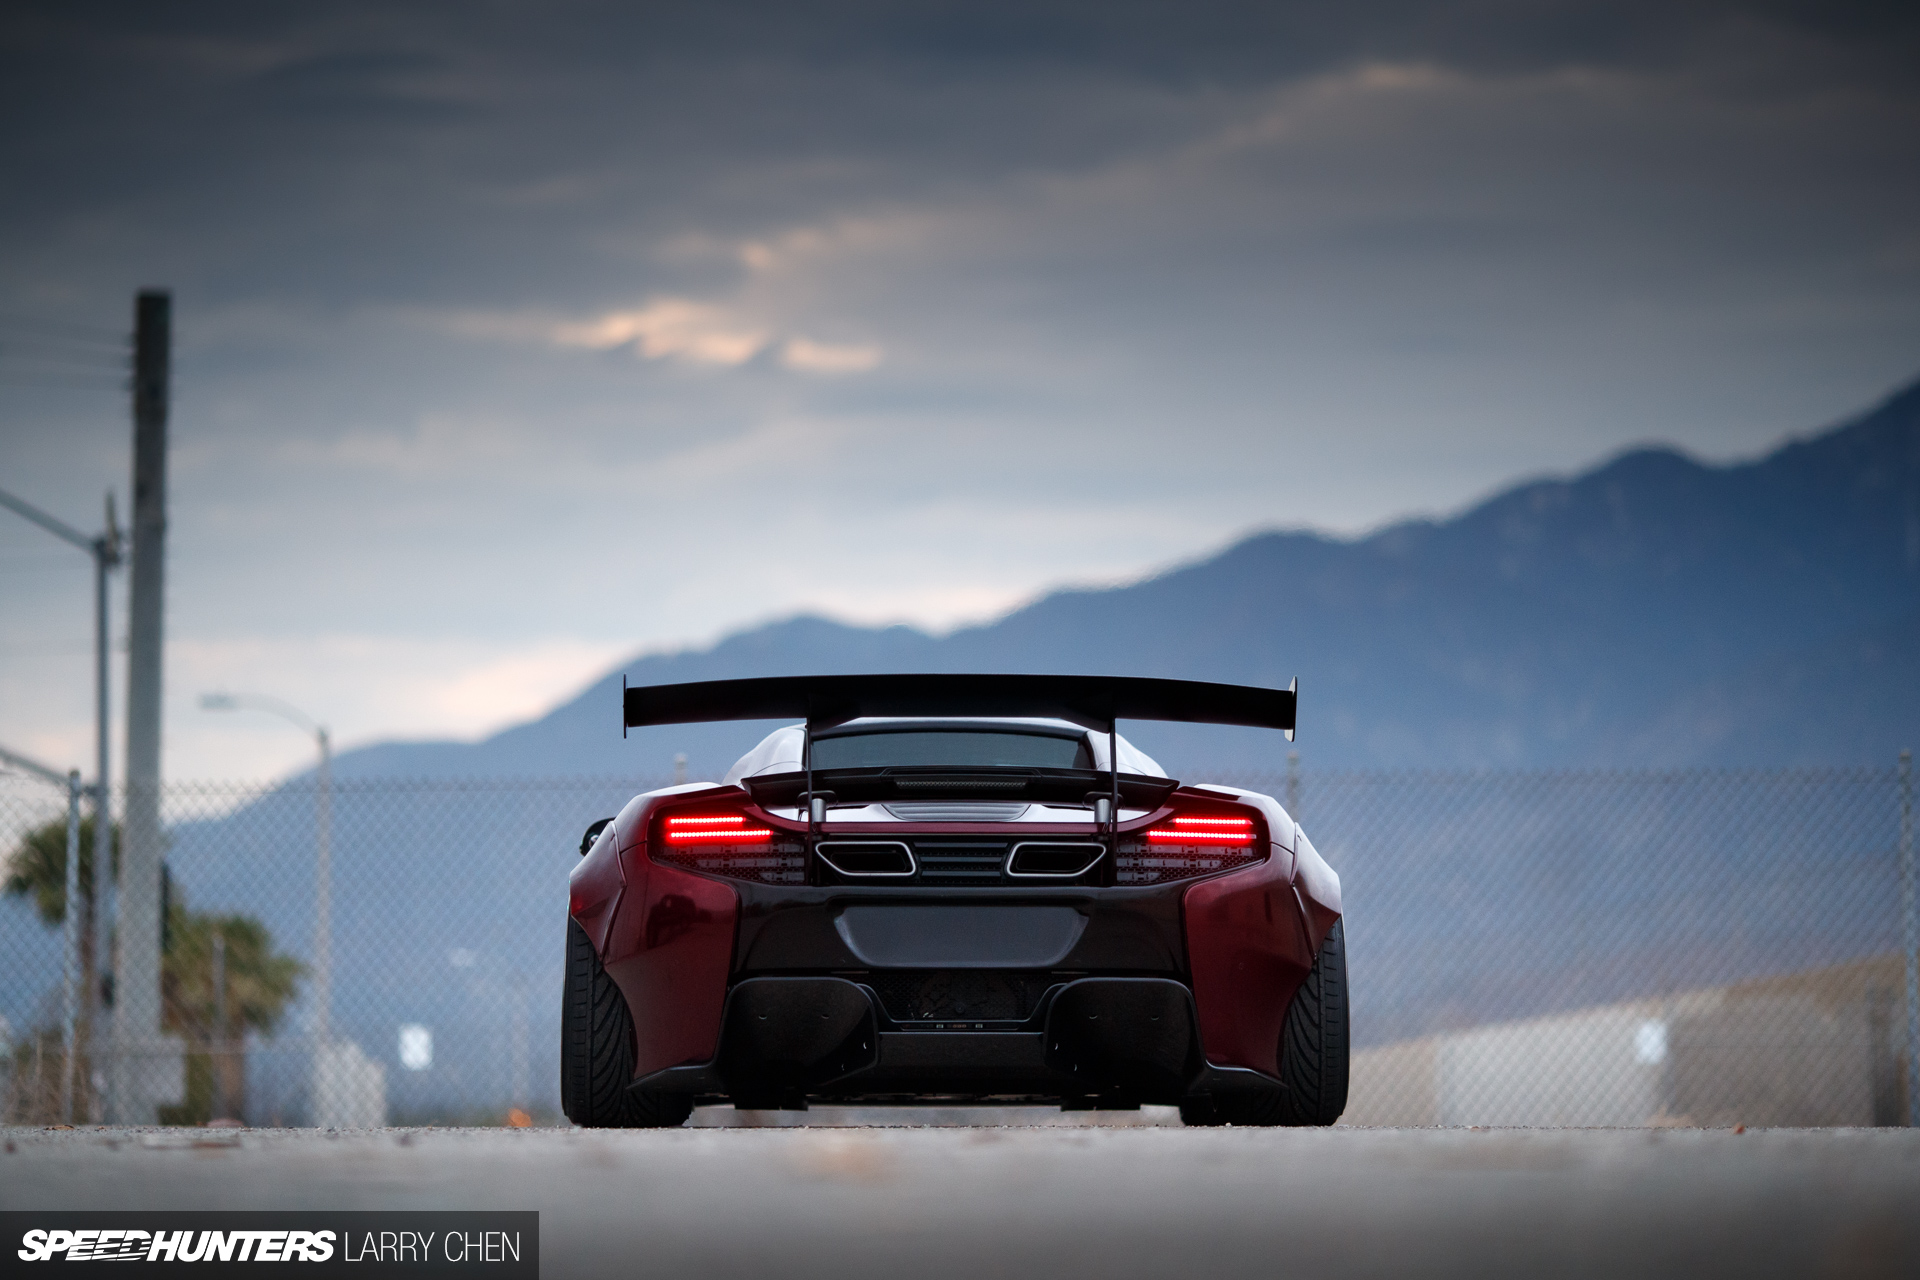 Larry_Chen_Speedhunters_liberty_walk_mclaren_Mp412c-2 LB-WORKS Mclaren 650S / MP4-12c